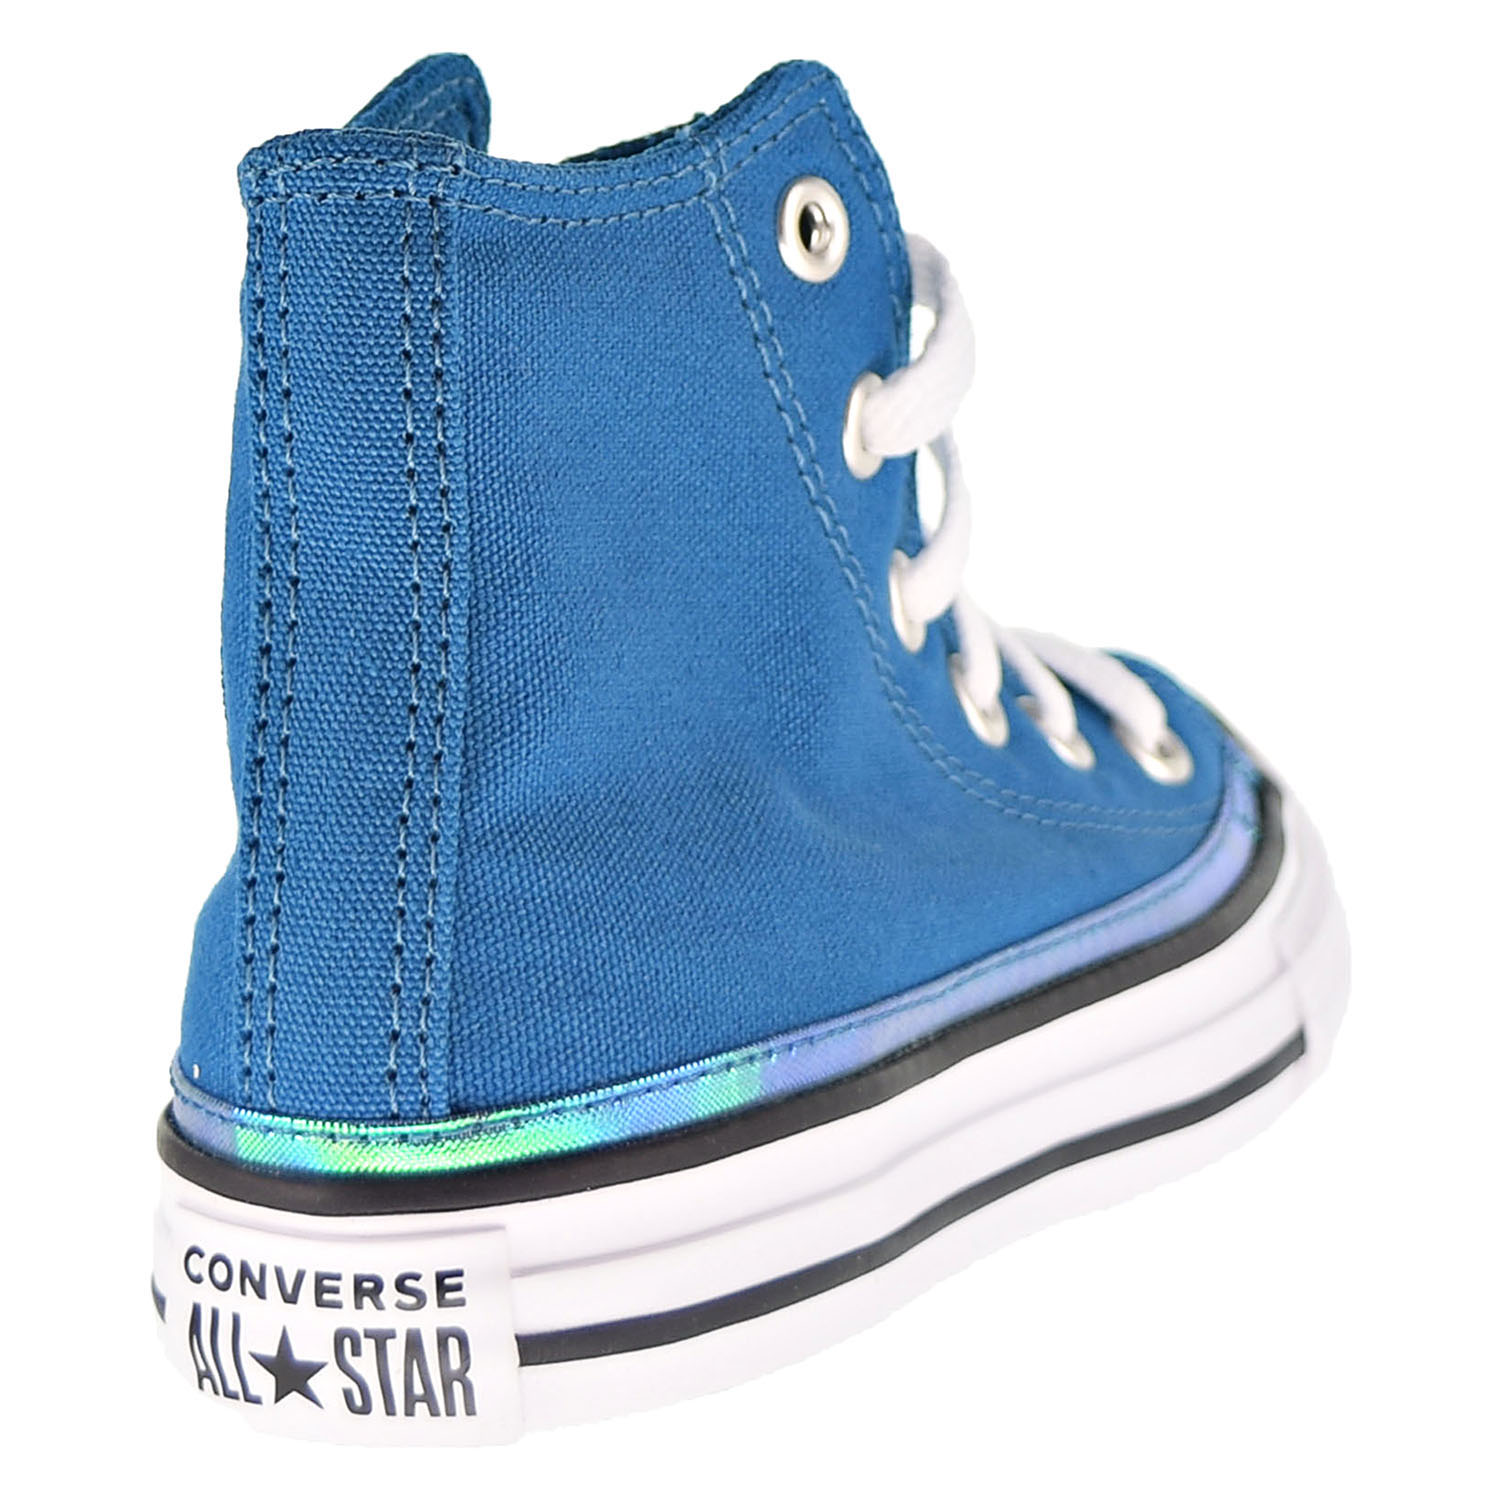 Converse Chuck Taylor All Star Hi Kids/' Shoes Campfire Orange//Black 661855F